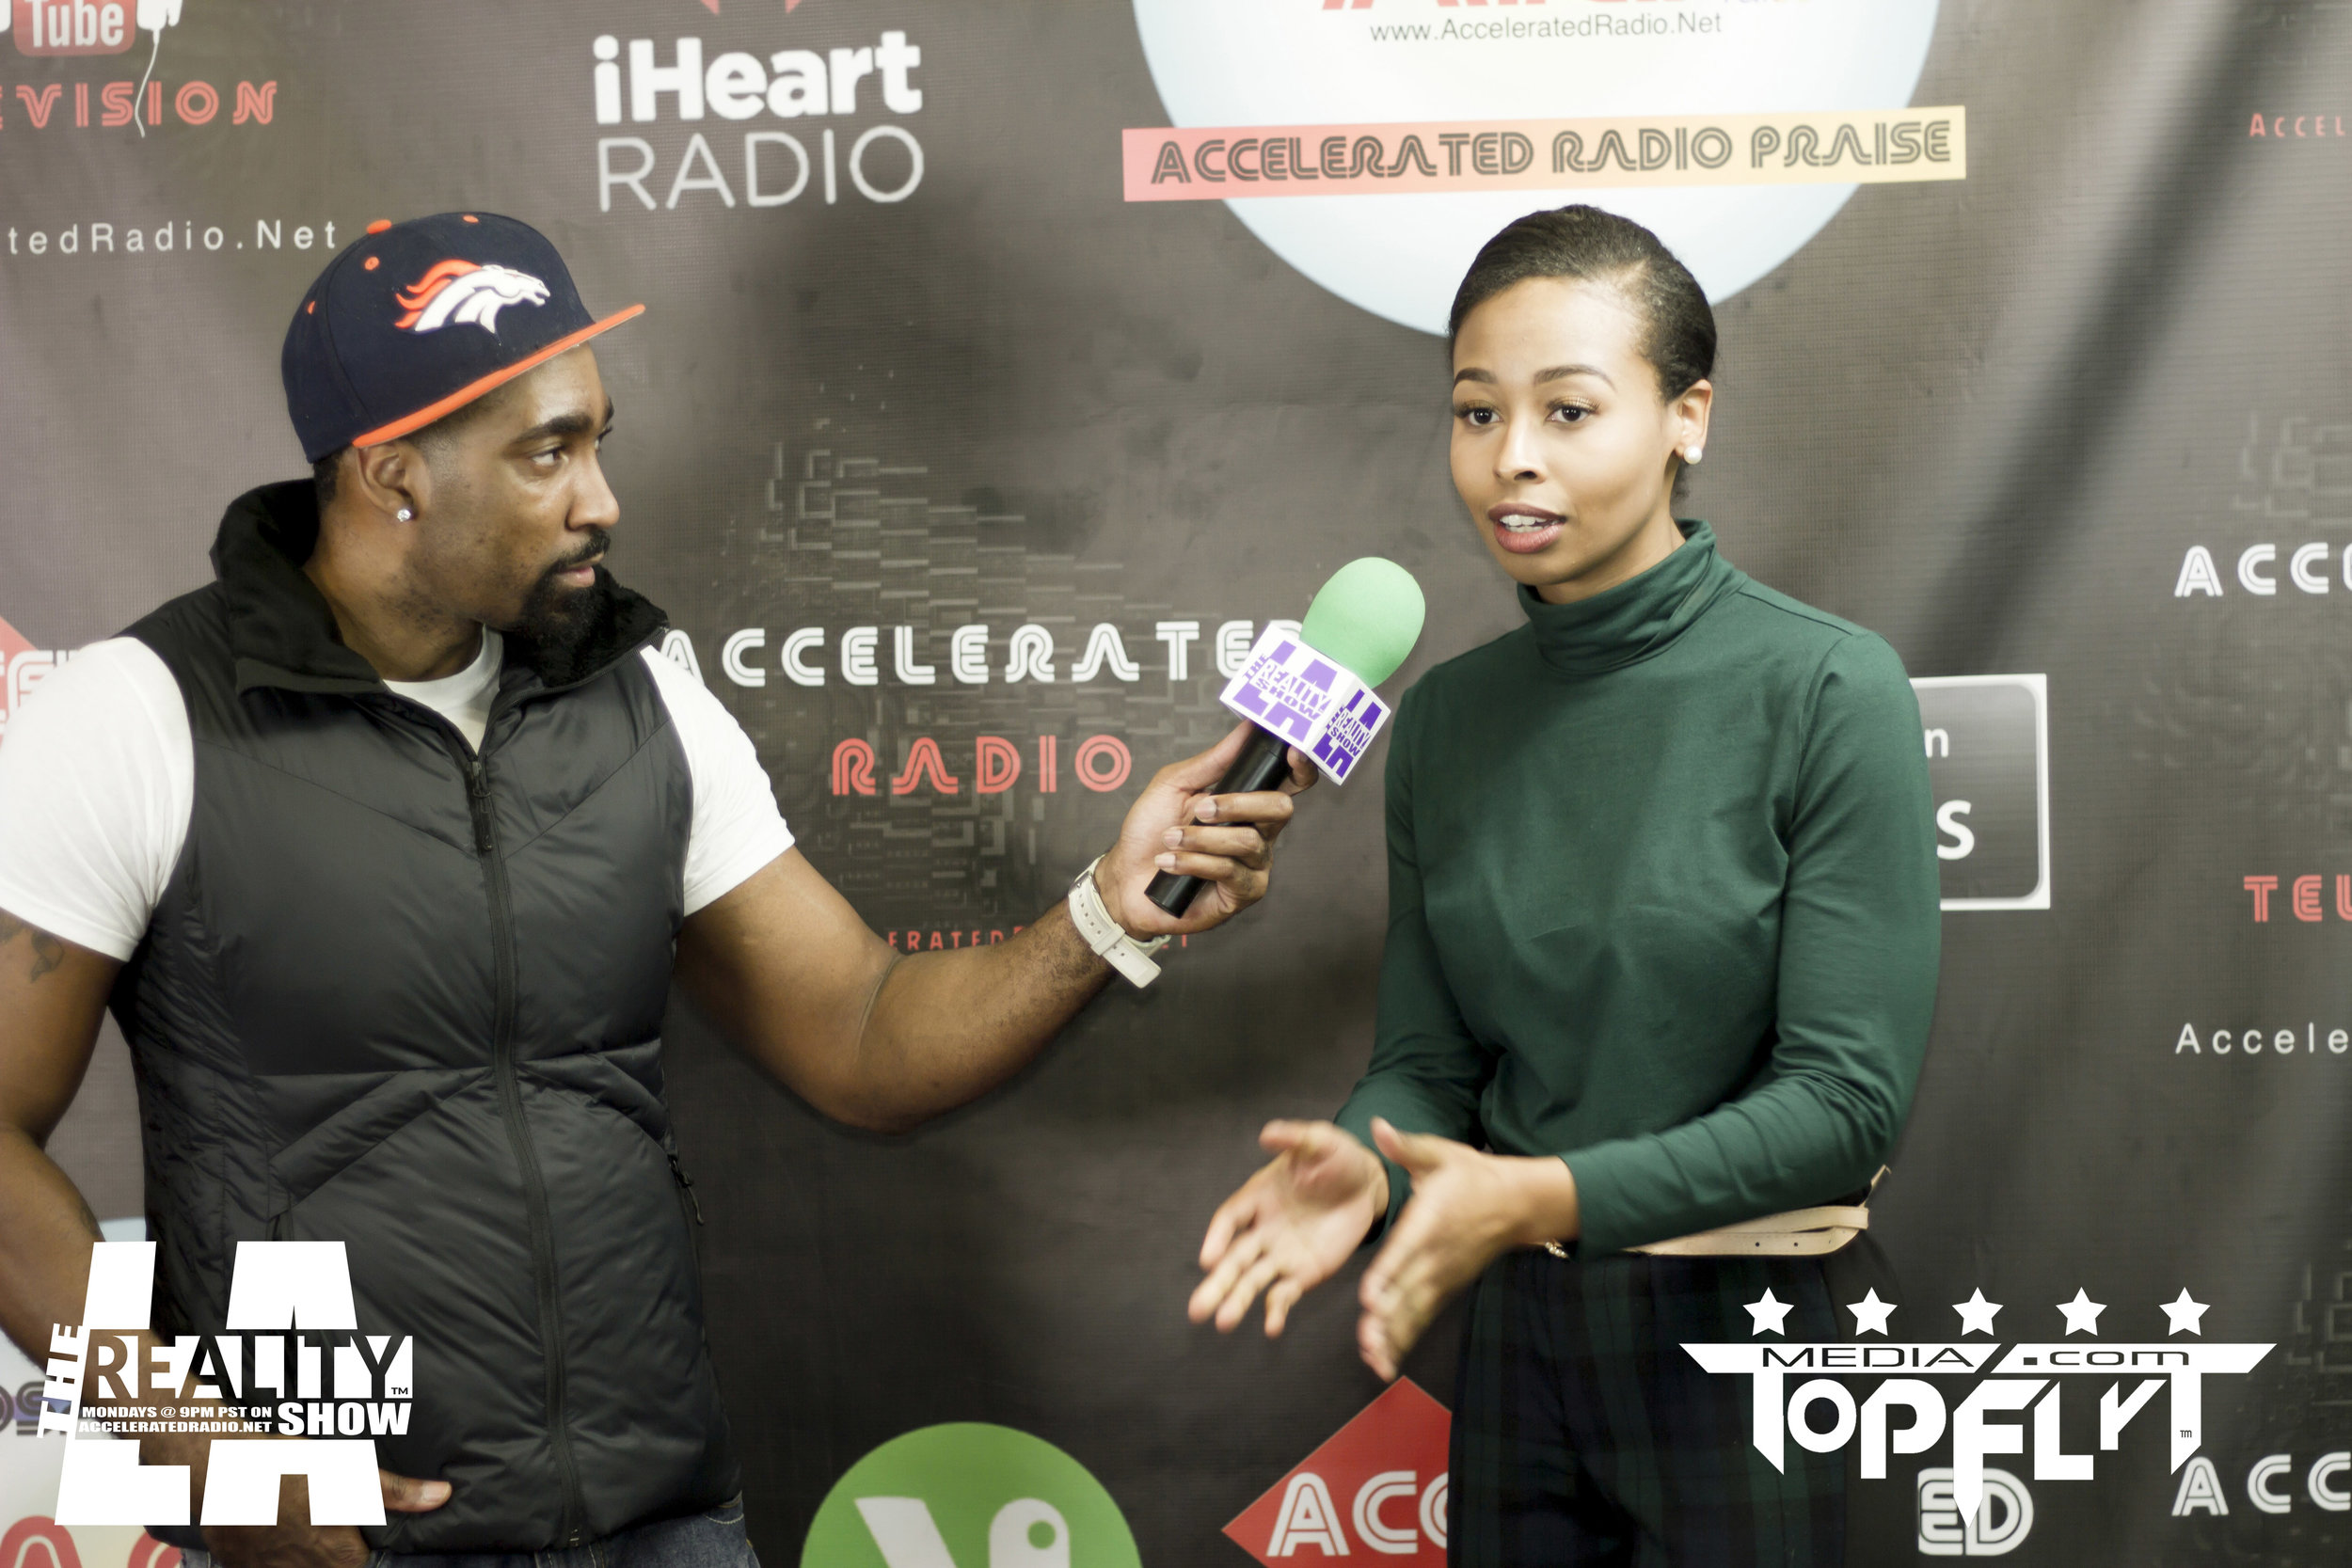 The Reality Show LA ft. Cast of FunnyMarriedStuff And Raquel Harris - 01-16-17_26.jpg